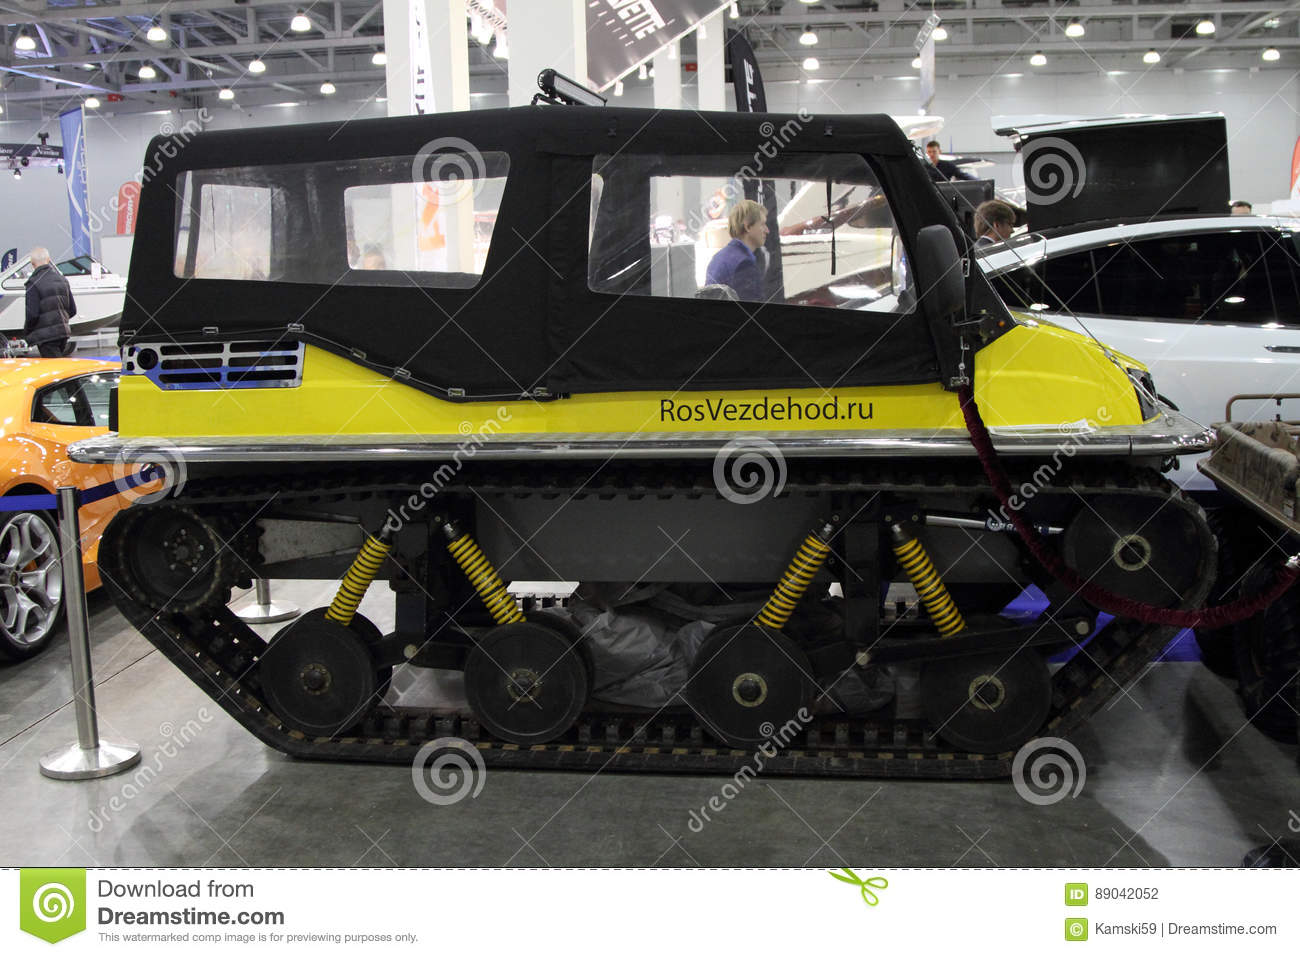 Russian all-terrain vehicle Terranica Dreamtrack with plastic tracks, which will take place anywhere 83